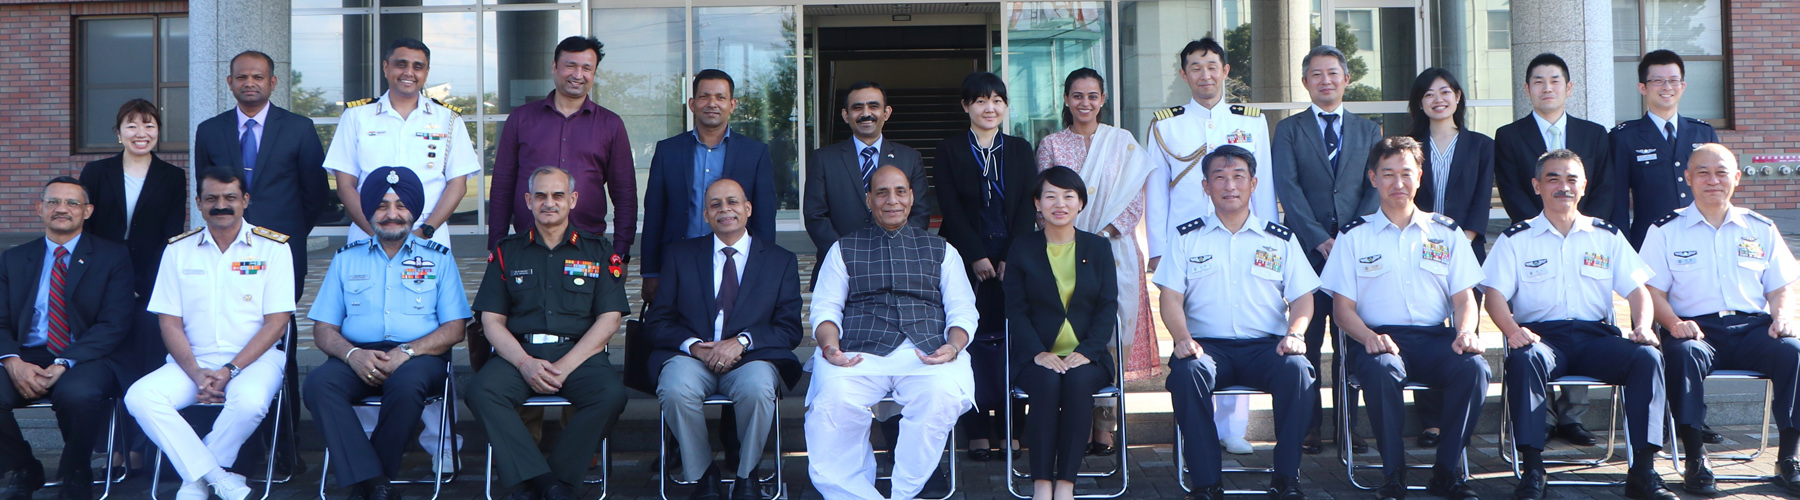 Raksha Mantri Shri Rajnath Singh in a group photo with the Indian delegation and Japanese Air Force officials at Hamamatsu Airbase in Japan on Tuesday, September 3, 2019.Also seen in the picture is Defence Secretary Dr Ajay Kumar